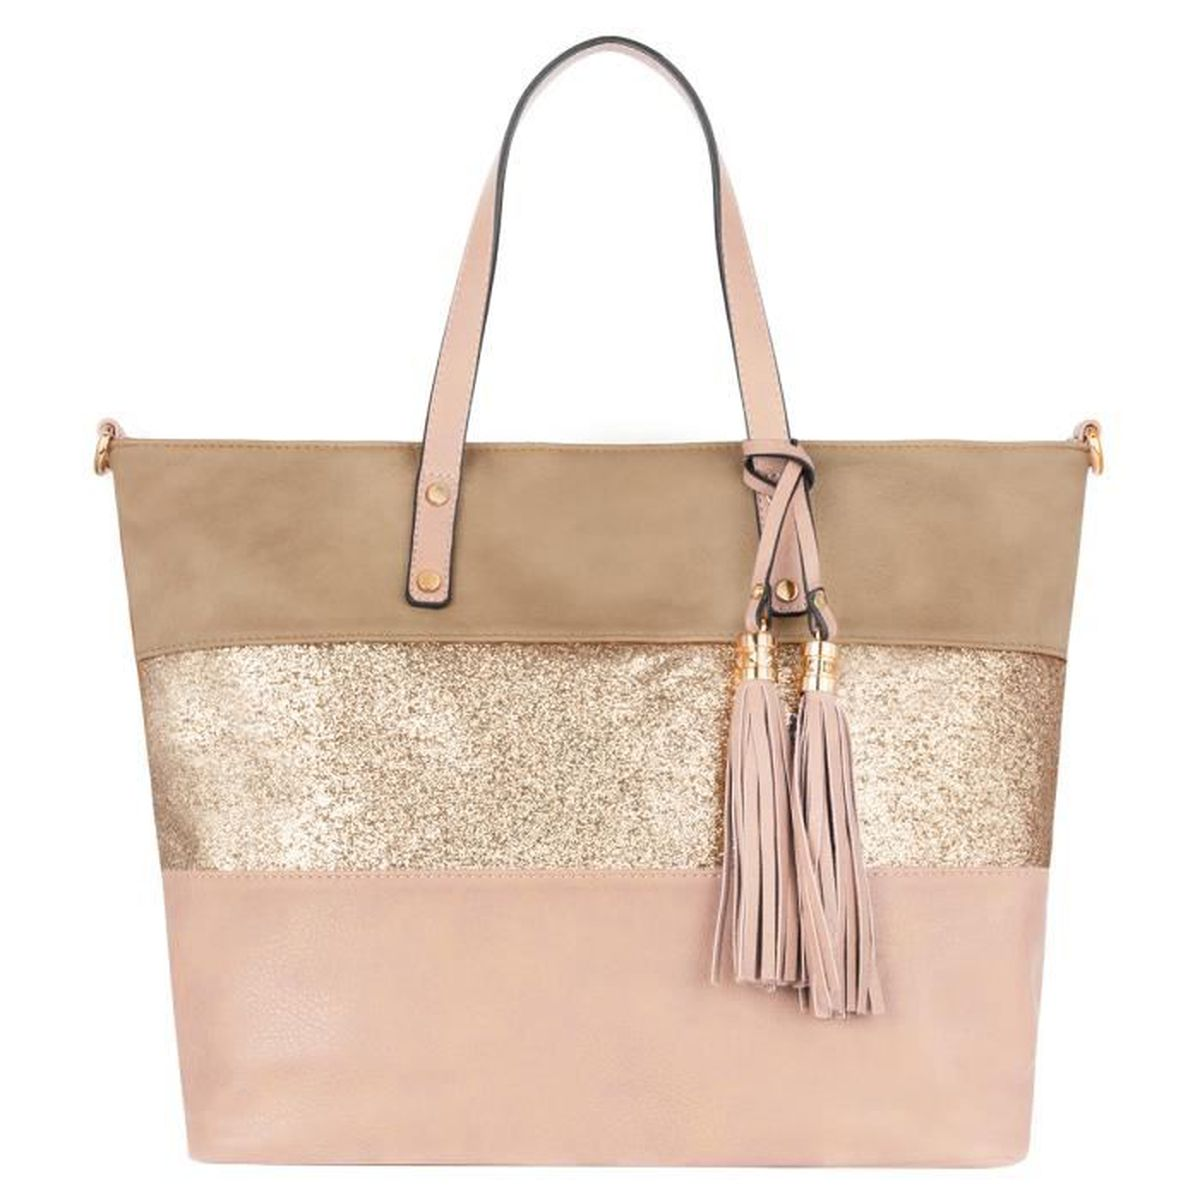 CRAZYCHIC Grand Sac à Main Cabas Paillette Cuir PU Femme Rose